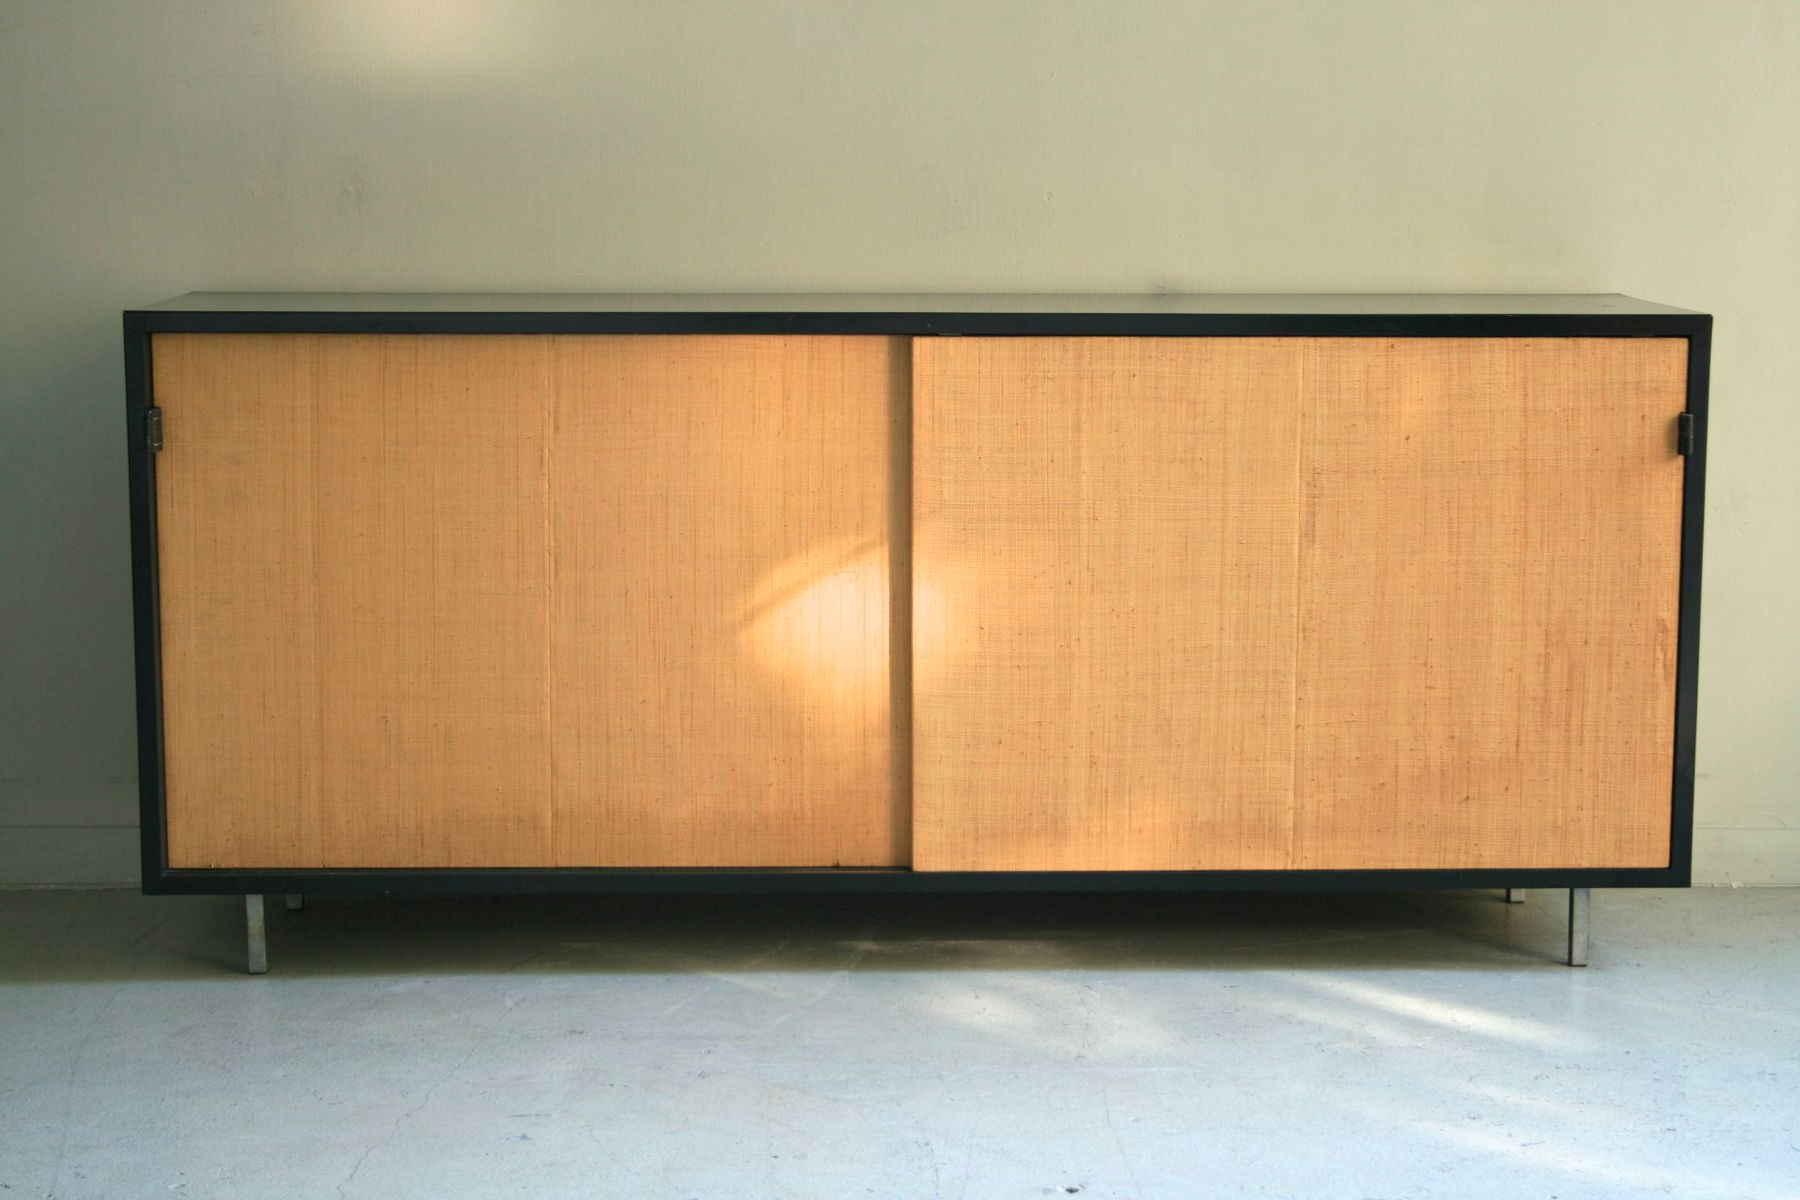 Girard 4 Door Sideboards With Regard To Preferred Sideboardcees Braakman & Florence Knoll For Knoll, 1960S For (Gallery 17 of 20)